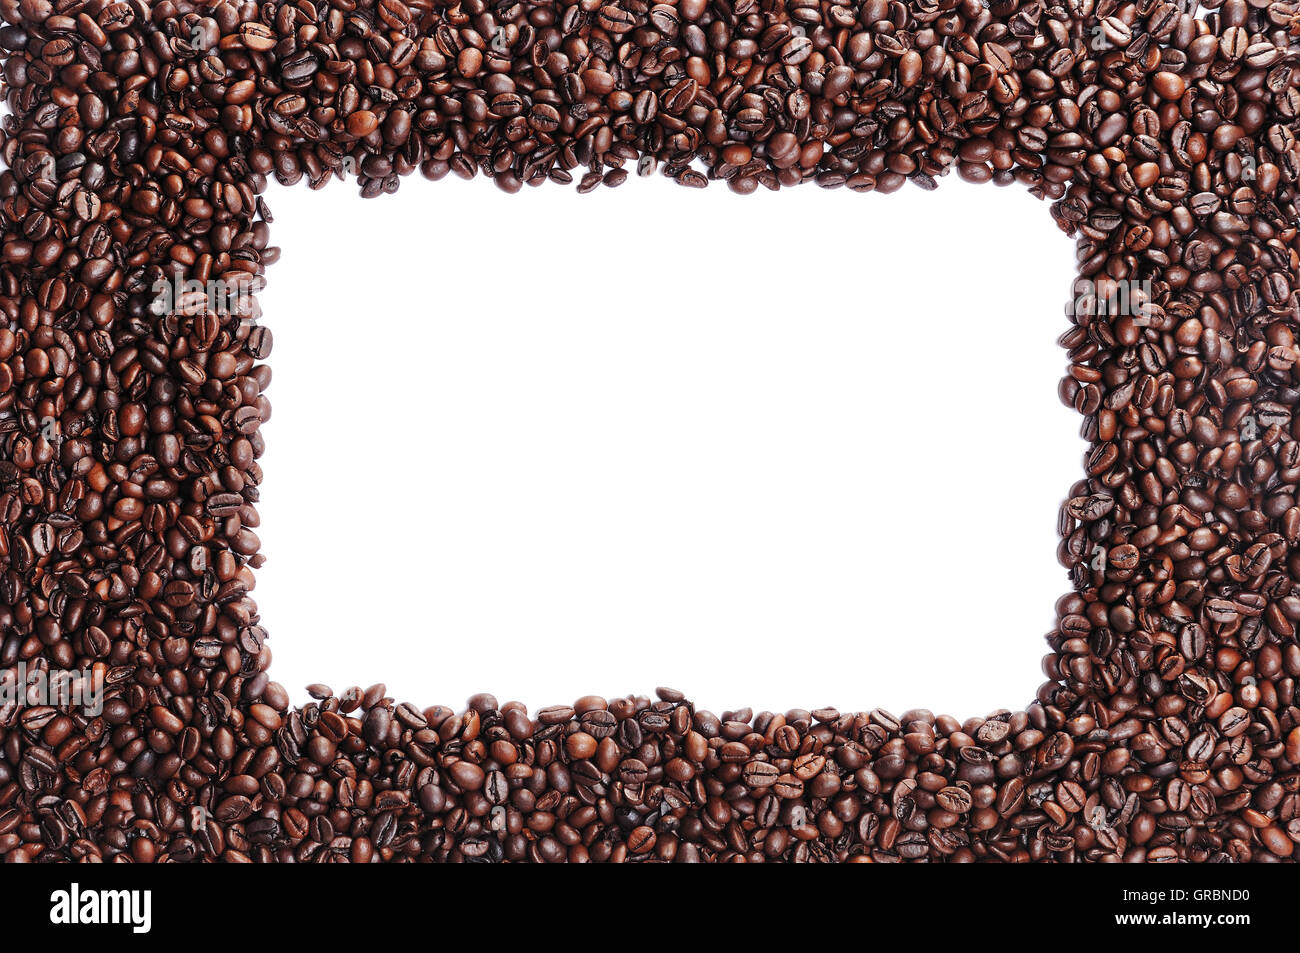 Coffee Bean Area With Window Stock Photo